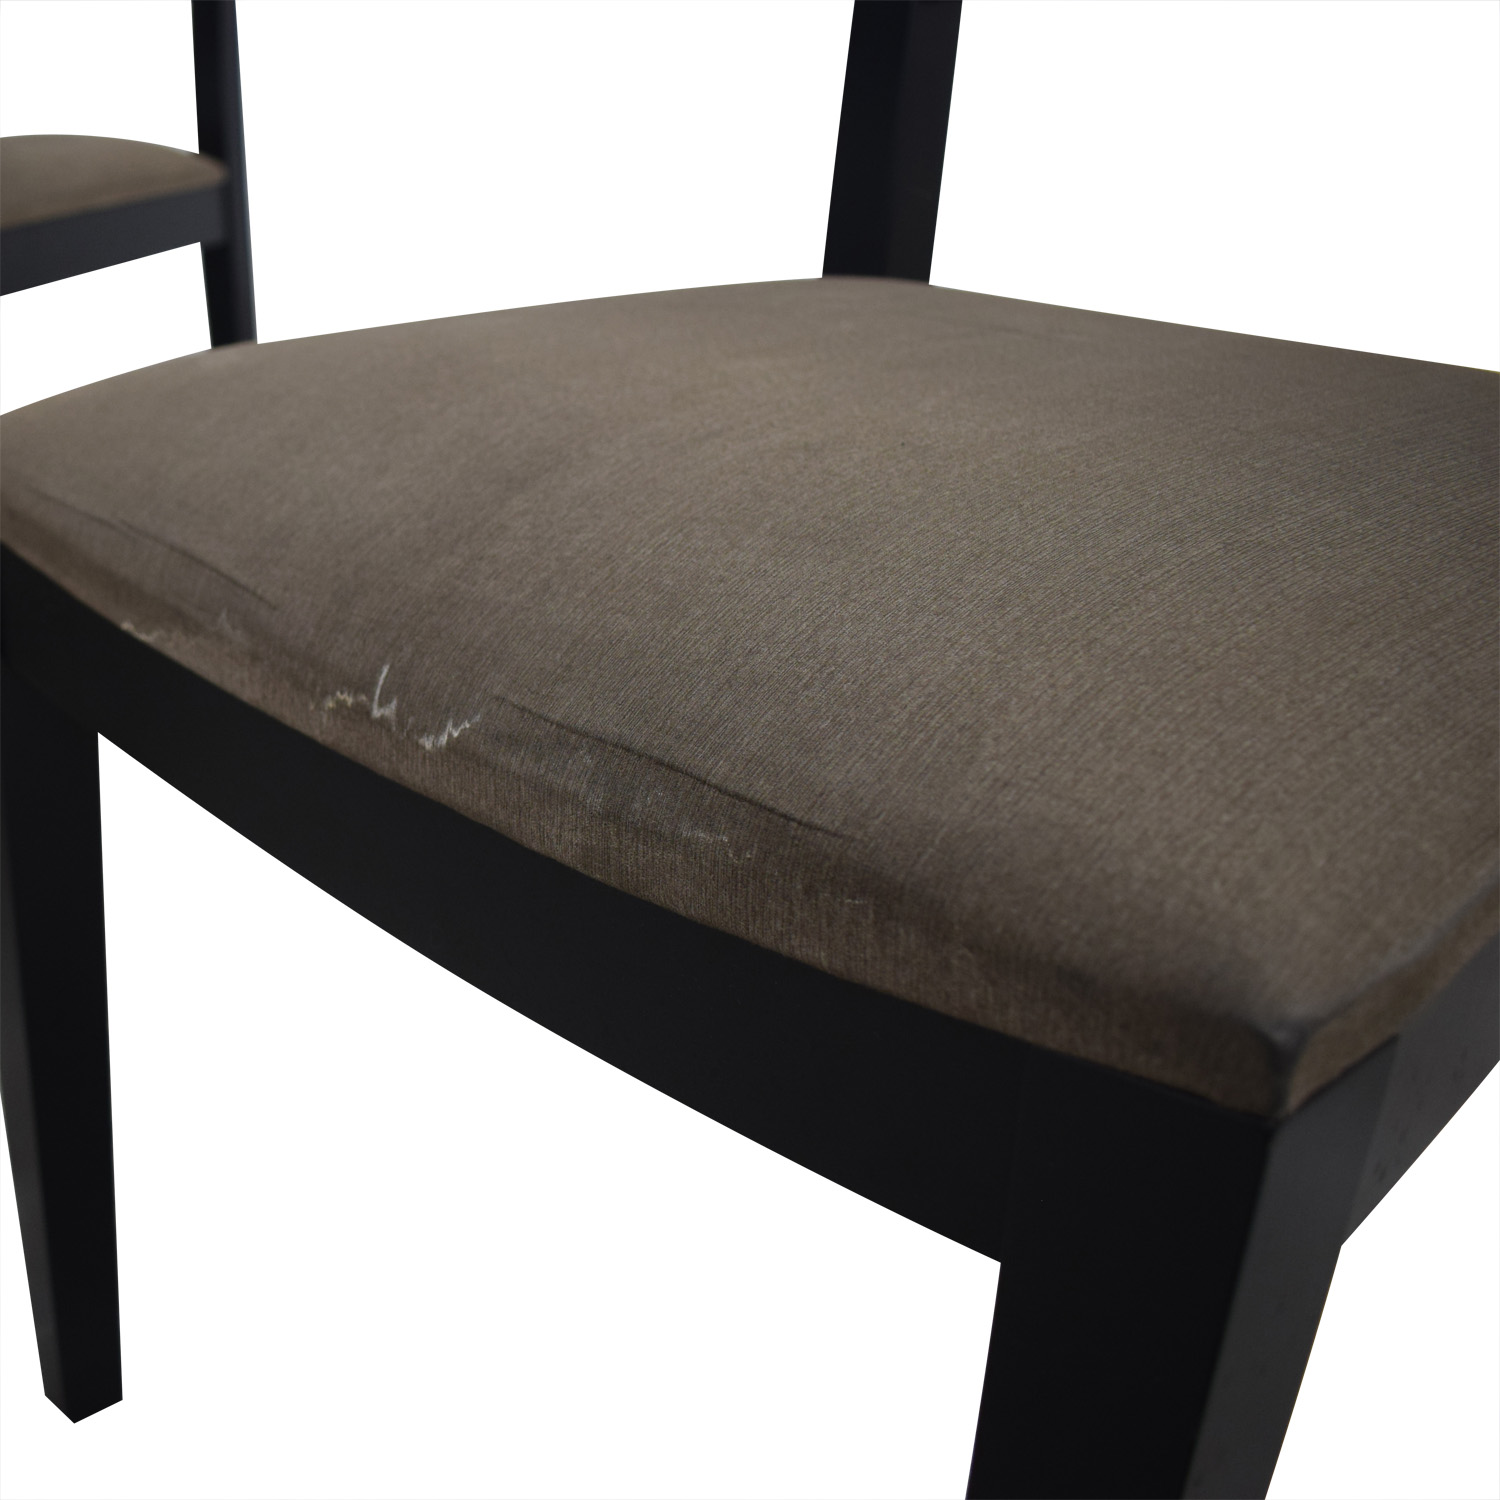 Crate & Barrel Halo Table With Basque Upholstered Chairs / Dinner Tables